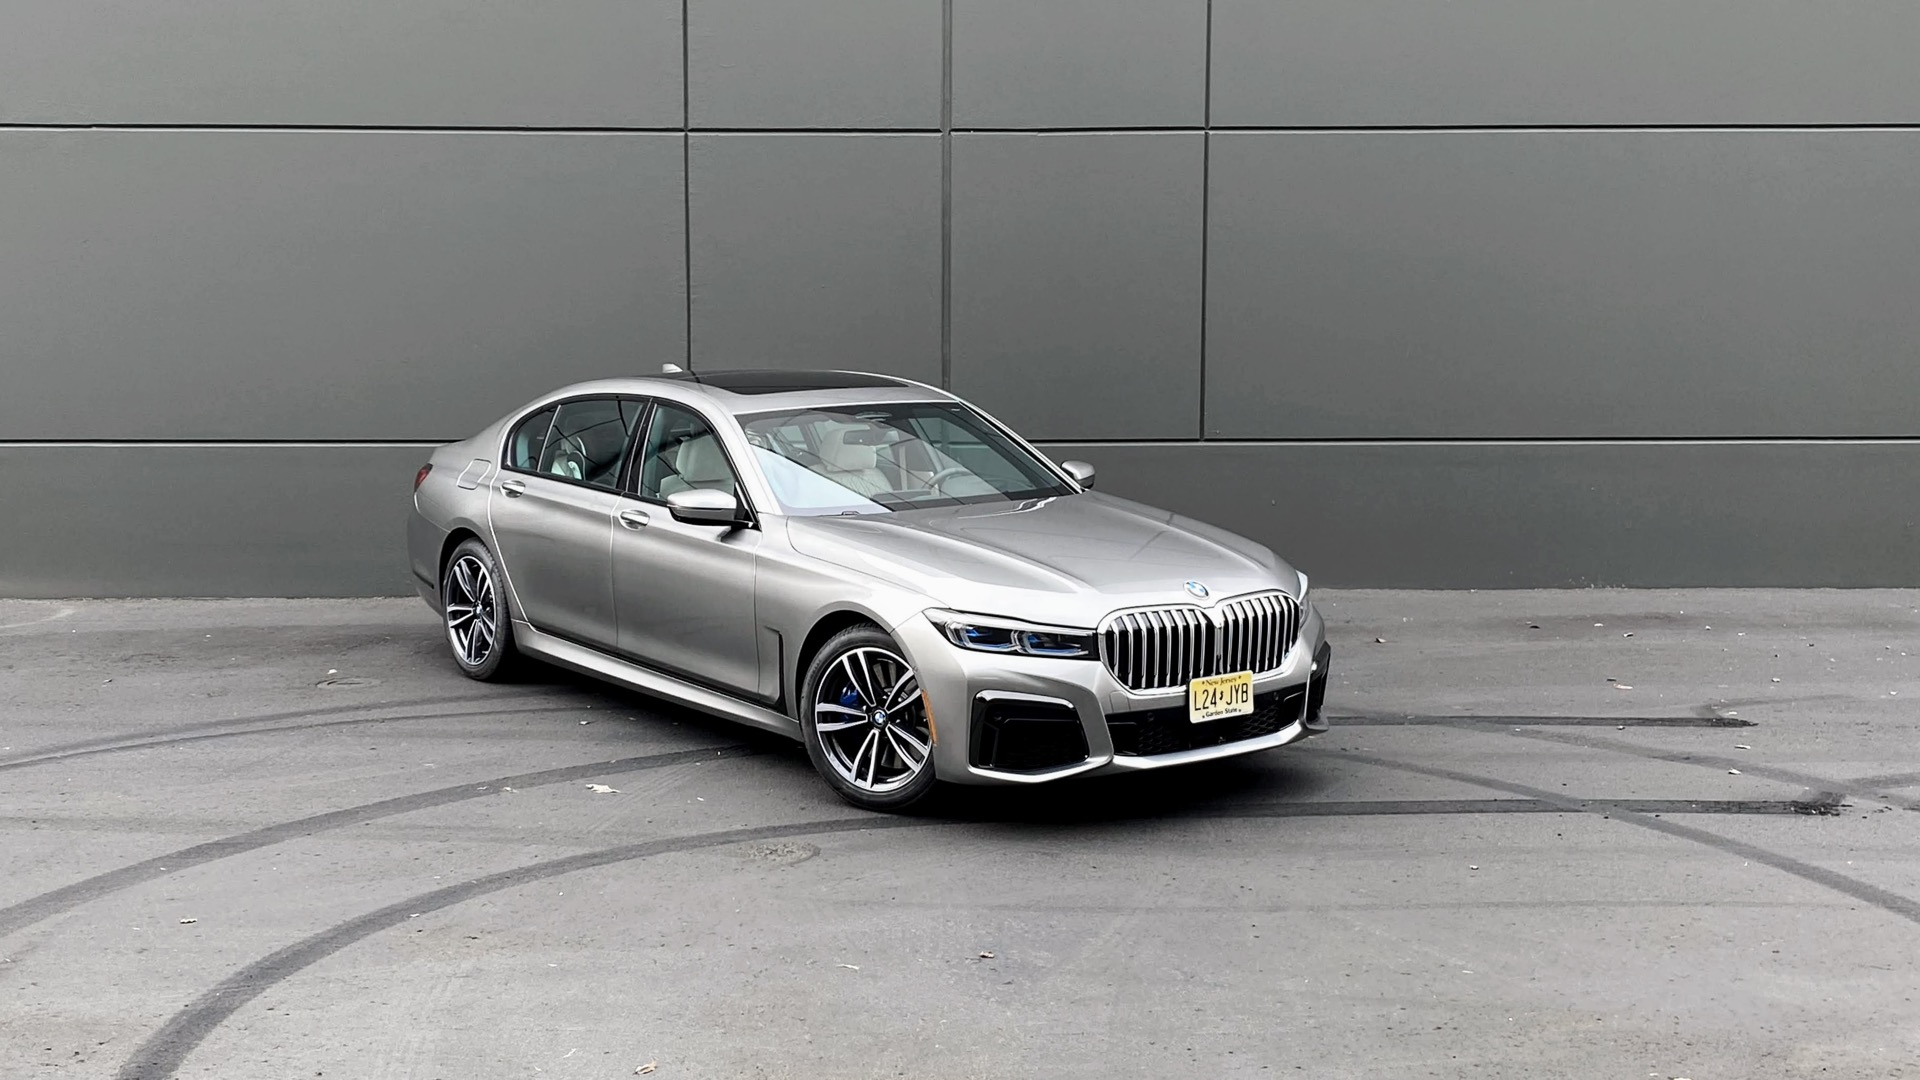 First drive review: 2020 BMW 745e plug-in hybrid luxury sedan goes your own way, all so posh